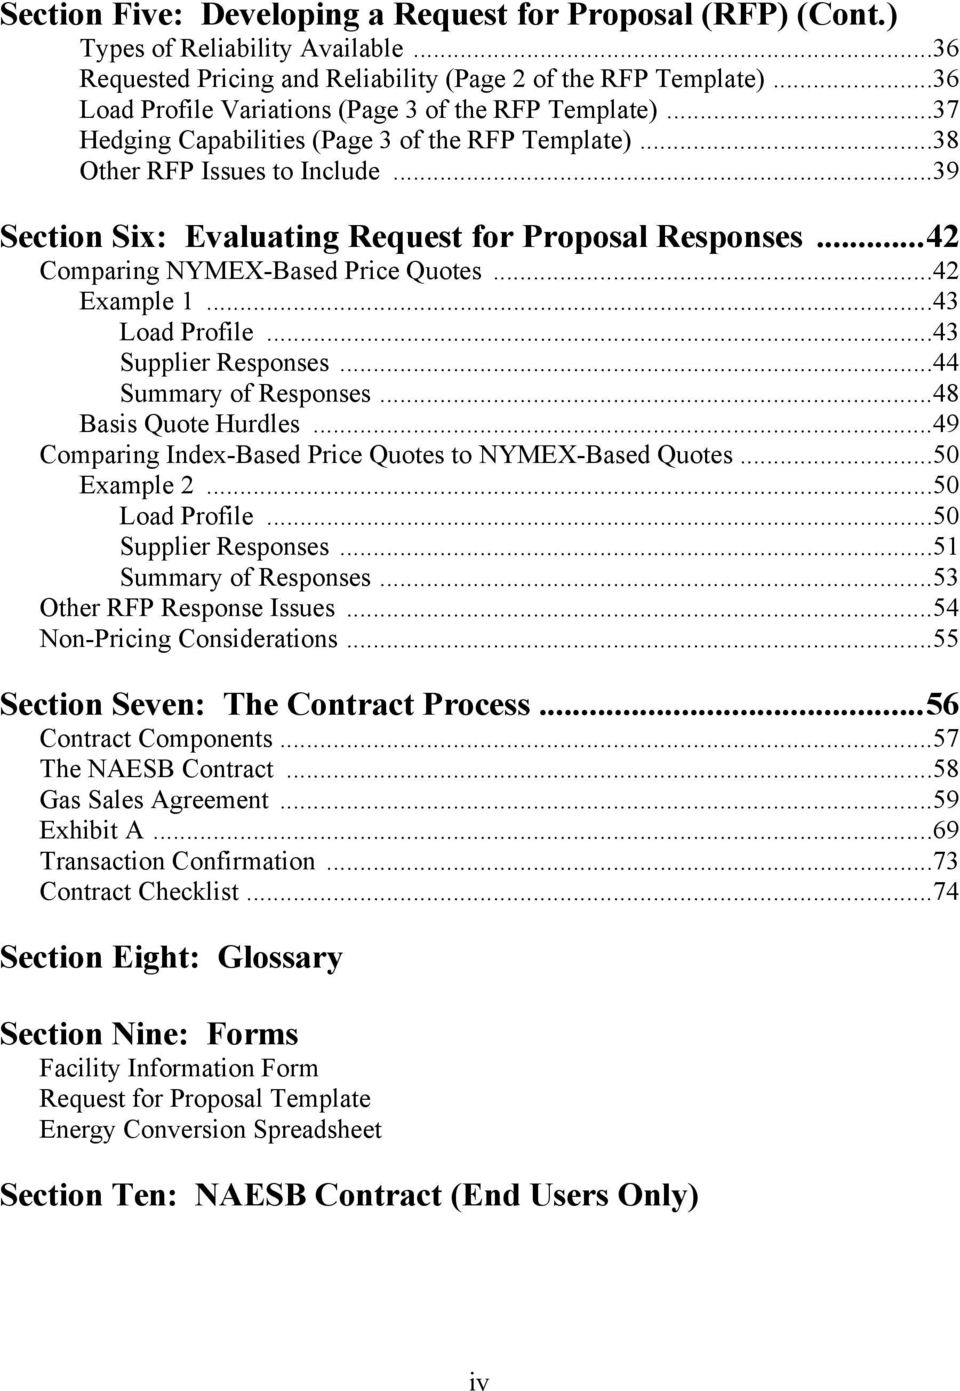 ..39 Section Six: Evaluating Request for Proposal Responses...42 Comparing NYMEX-Based Price Quotes...42 Example 1...43 Load Profile...43 Supplier Responses...44 Summary of Responses.